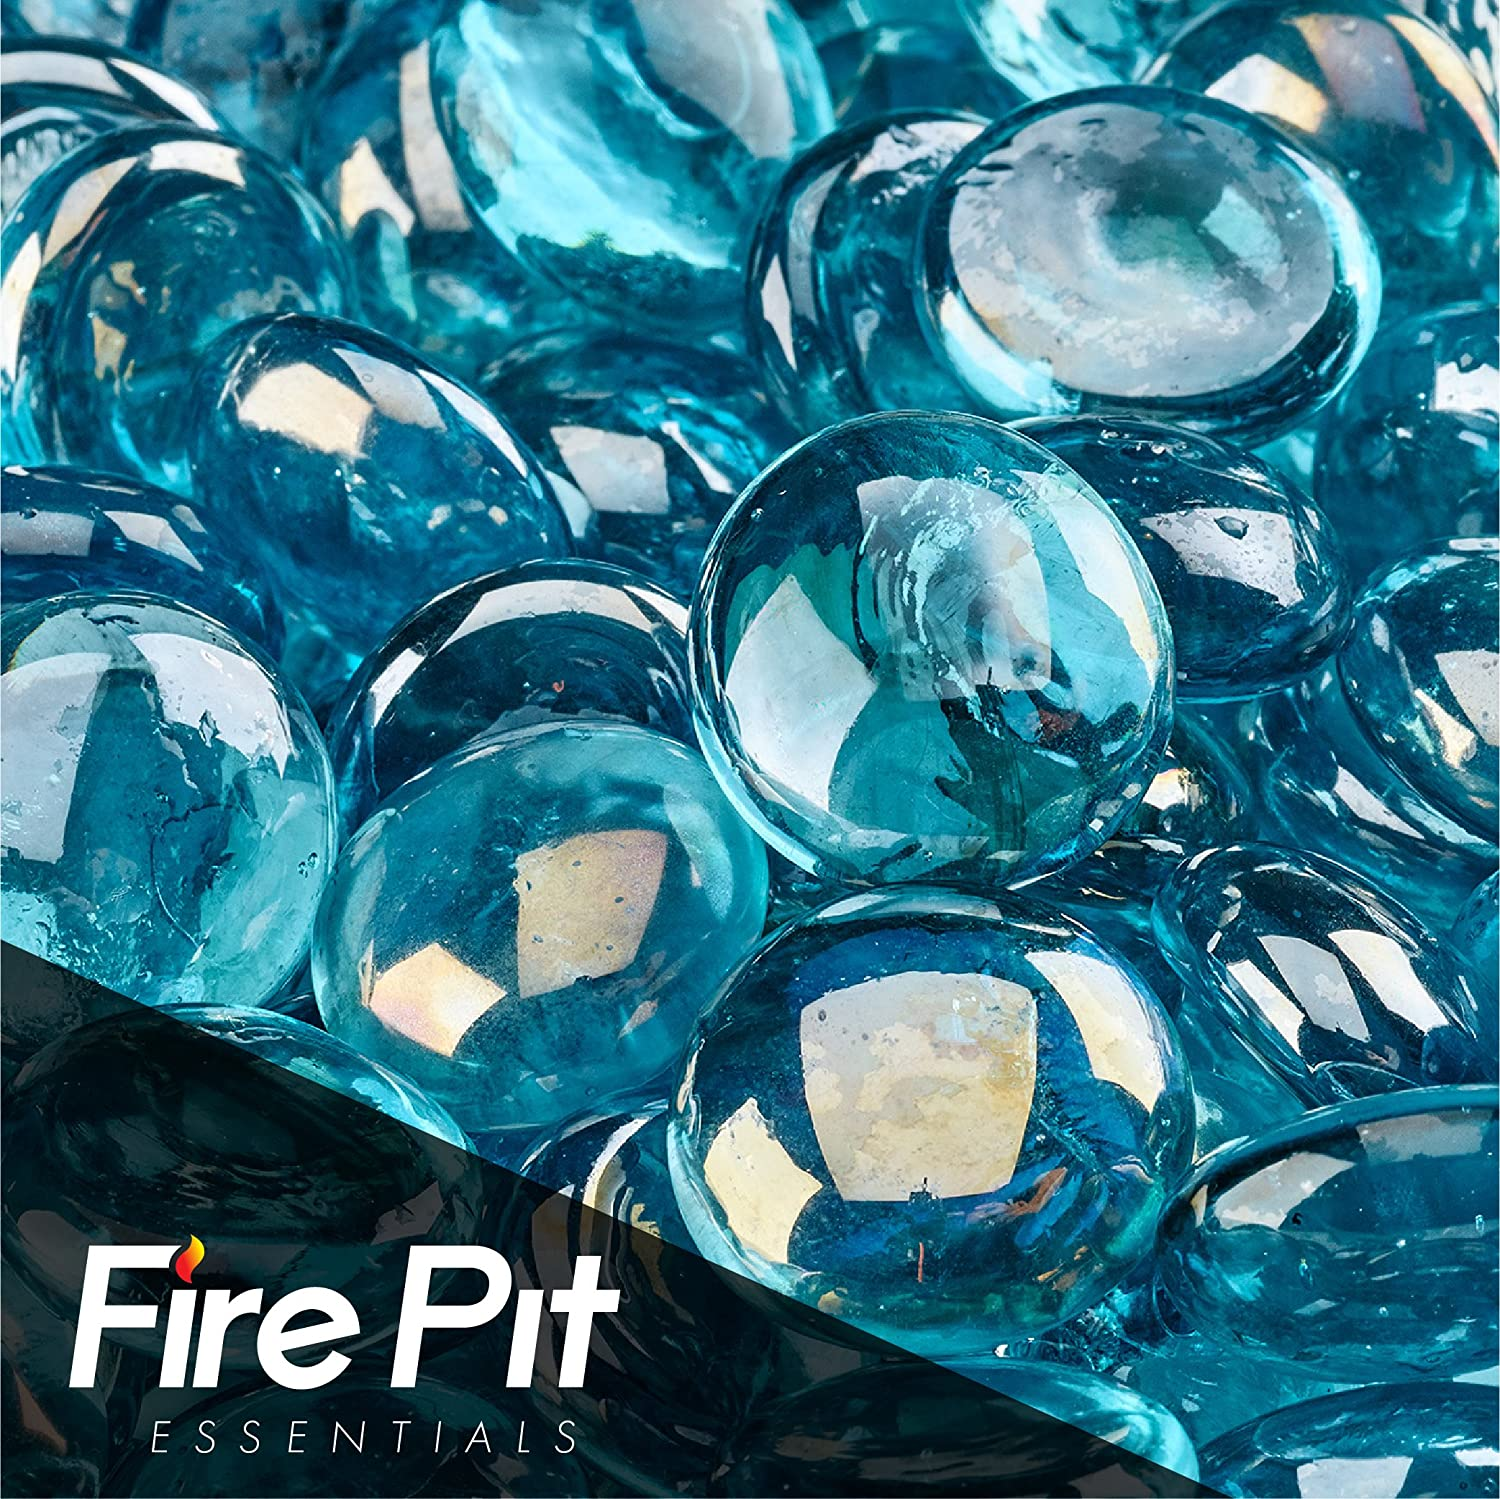 Aqua Blue Fire Beads Fire Glass Firepit Glass 10 Pounds Great for Fire Pit Fireglass or Fireplace Glass Fire Pit Essentials FB-03